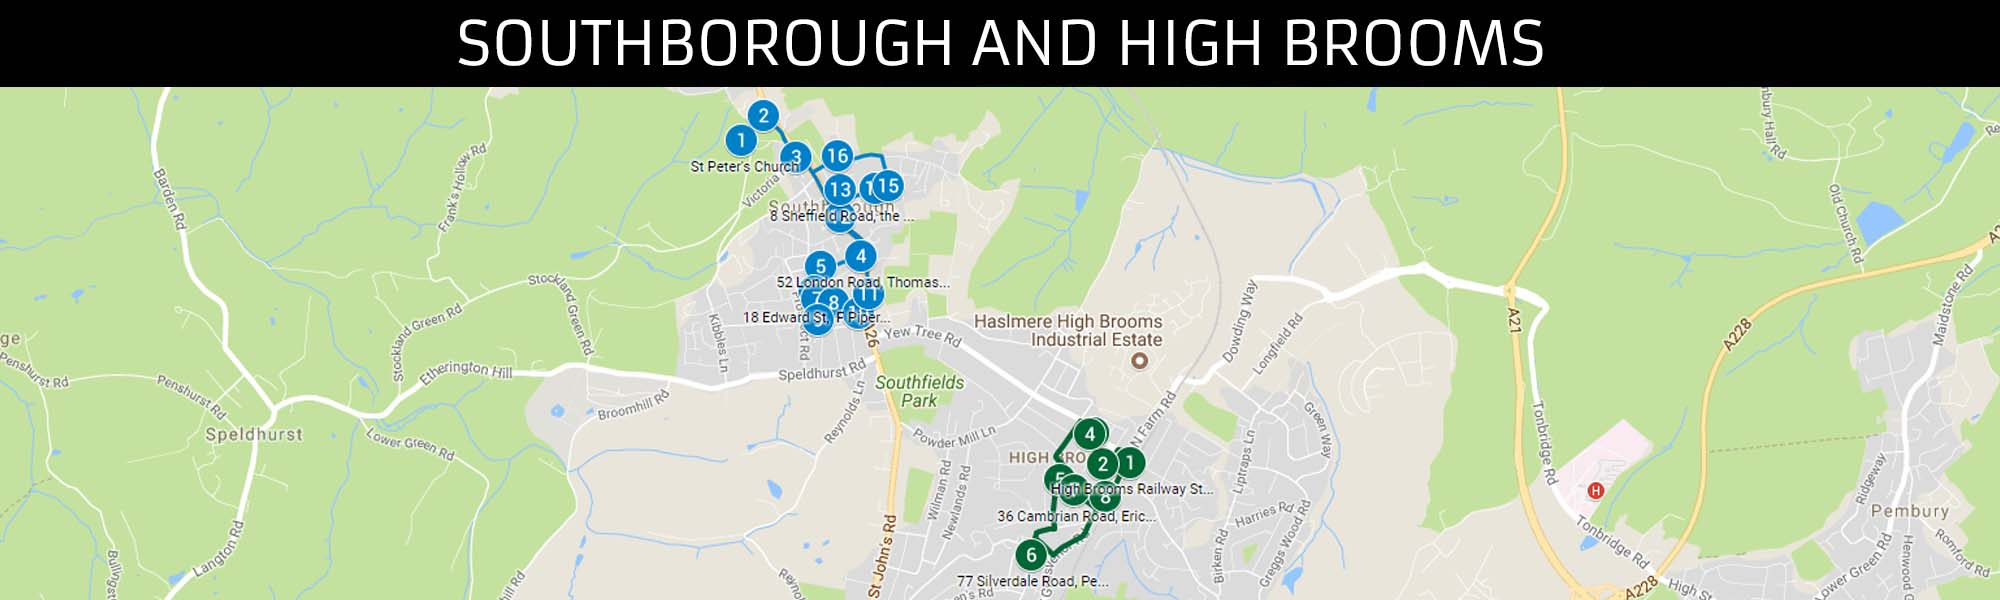 Southborough and High Brooms Trail